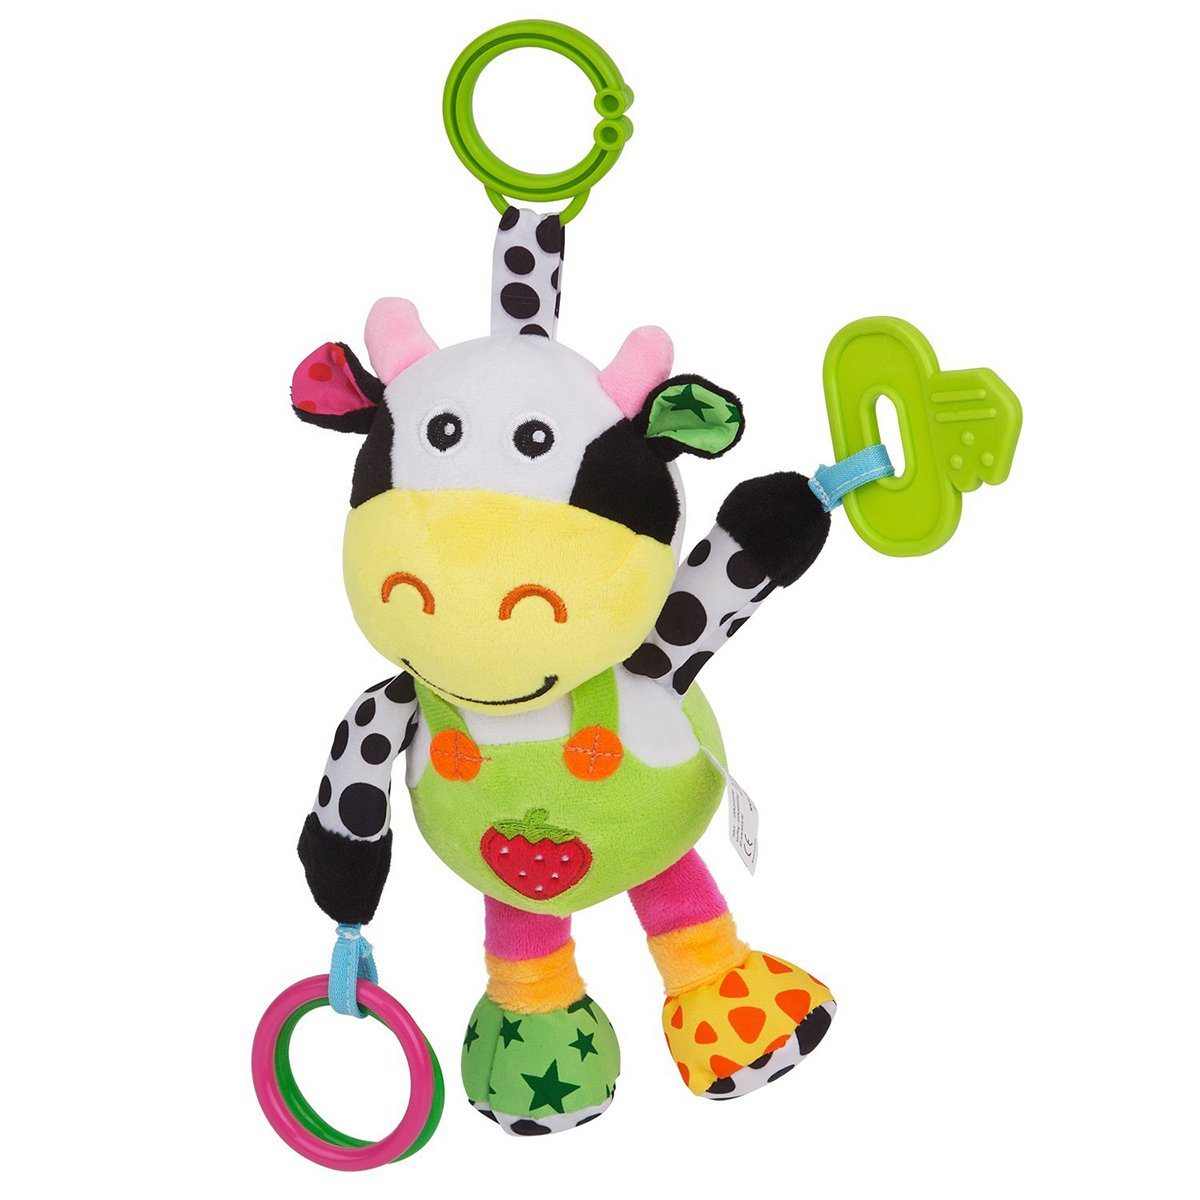 NUOLUX Stroller Car Seat Toy Kids Baby Bed Crib Cot Pram Hanging Musical Toy Pendant (Cow) by NUOLUX (Image #4)